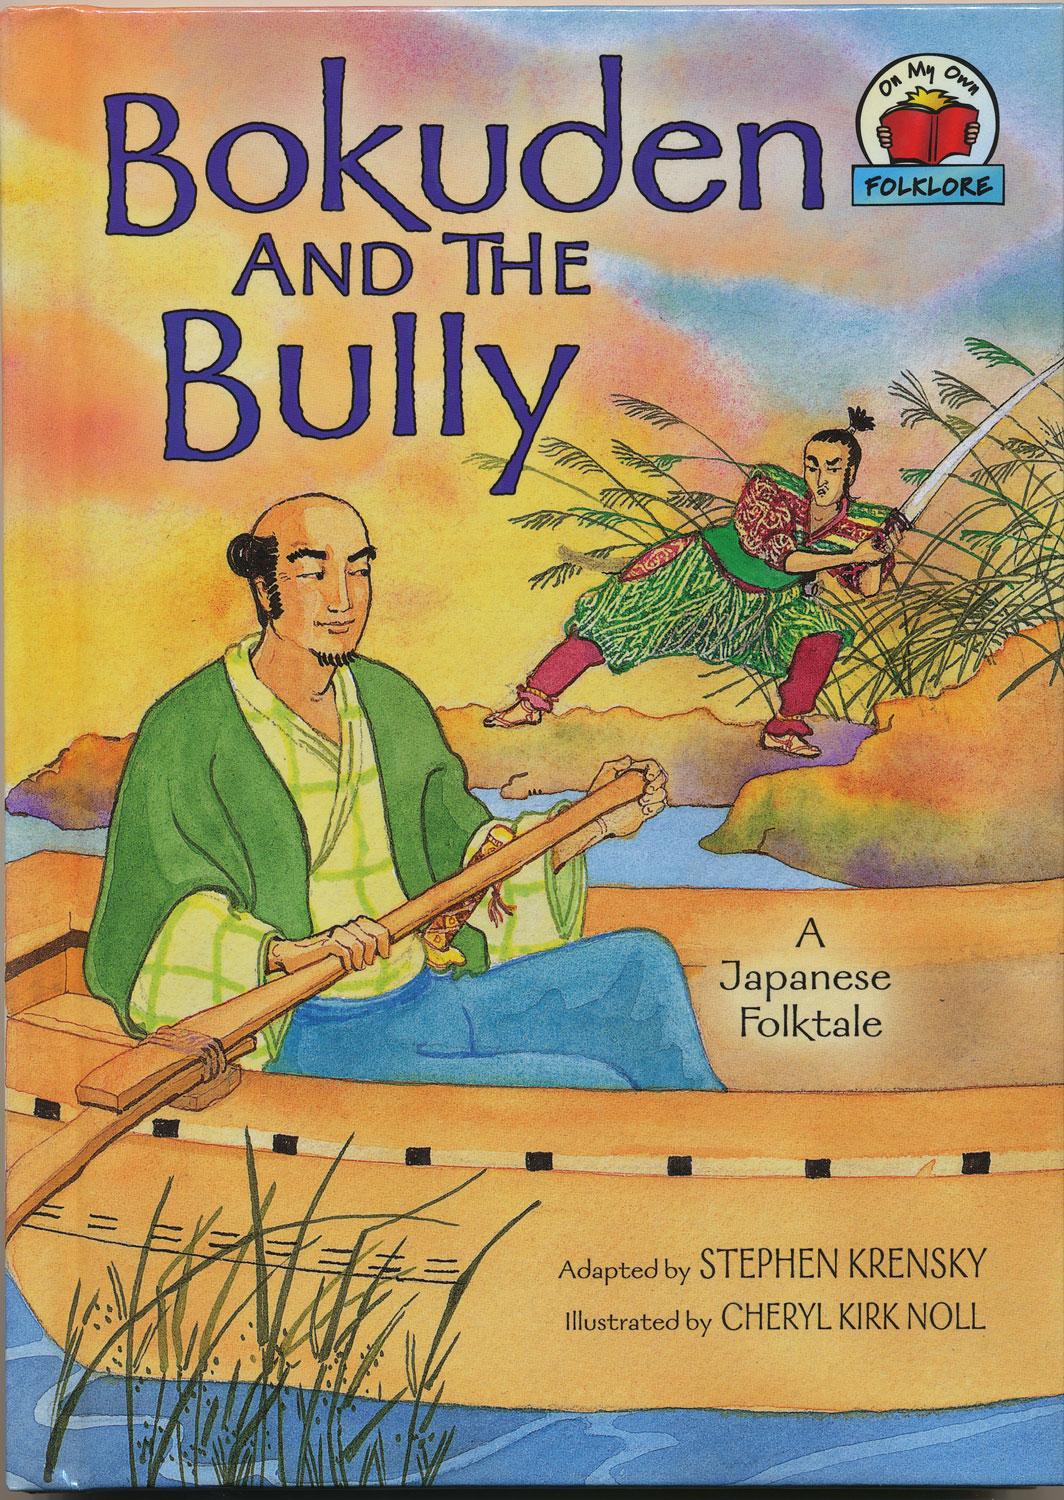 Bokuden and the Bully, by Stephen Kresky, Lerner Publications